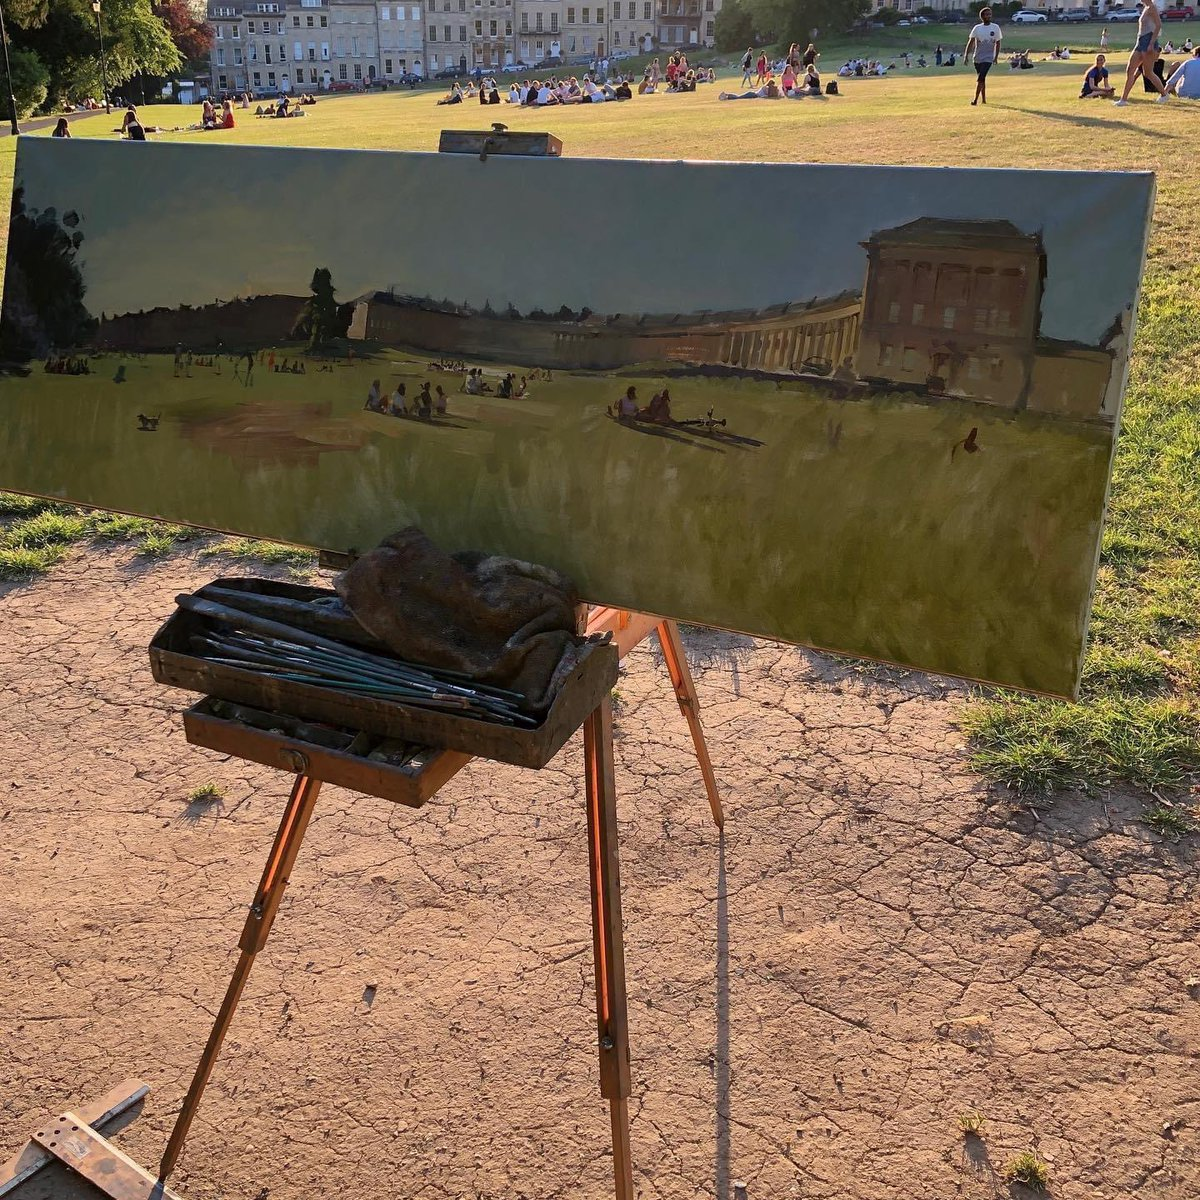 The #dissolution of #lockdown the #royalcrescent #royalcrescentbath  #DominicCummings effect... sitting one.  #pleinair #art 20 x 60 inches oil on canvas pic.twitter.com/yhsTbqdIa1